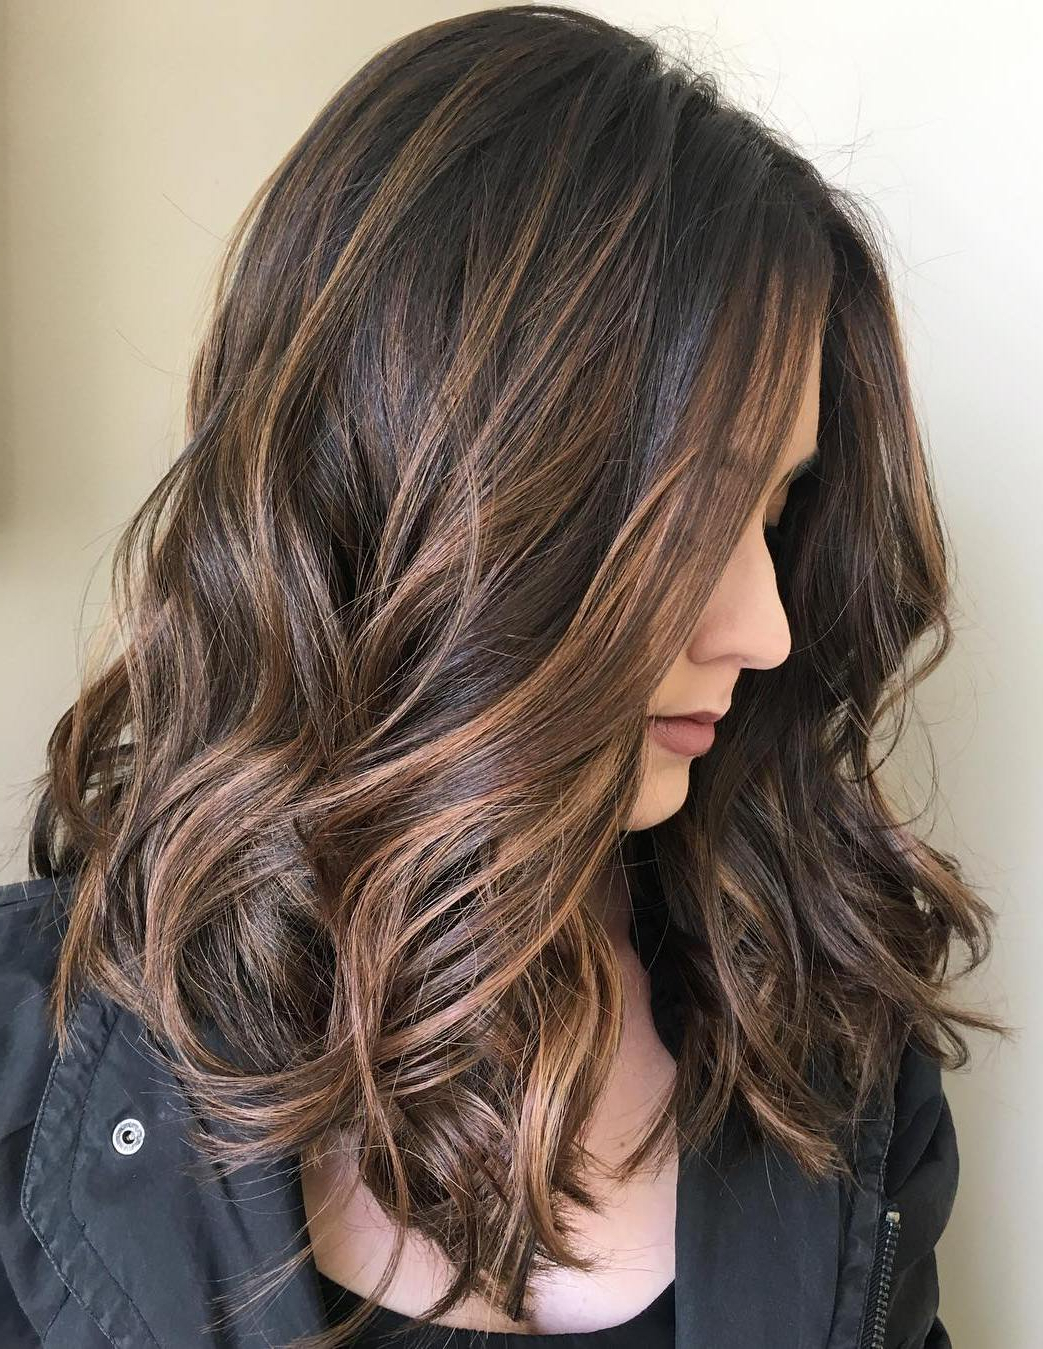 70 Balayage Hair Color Ideas With Blonde, Brown And Caramel Highlights Throughout Latest Choppy Dimensional Layers For Balayage Long Hairstyles (View 4 of 20)